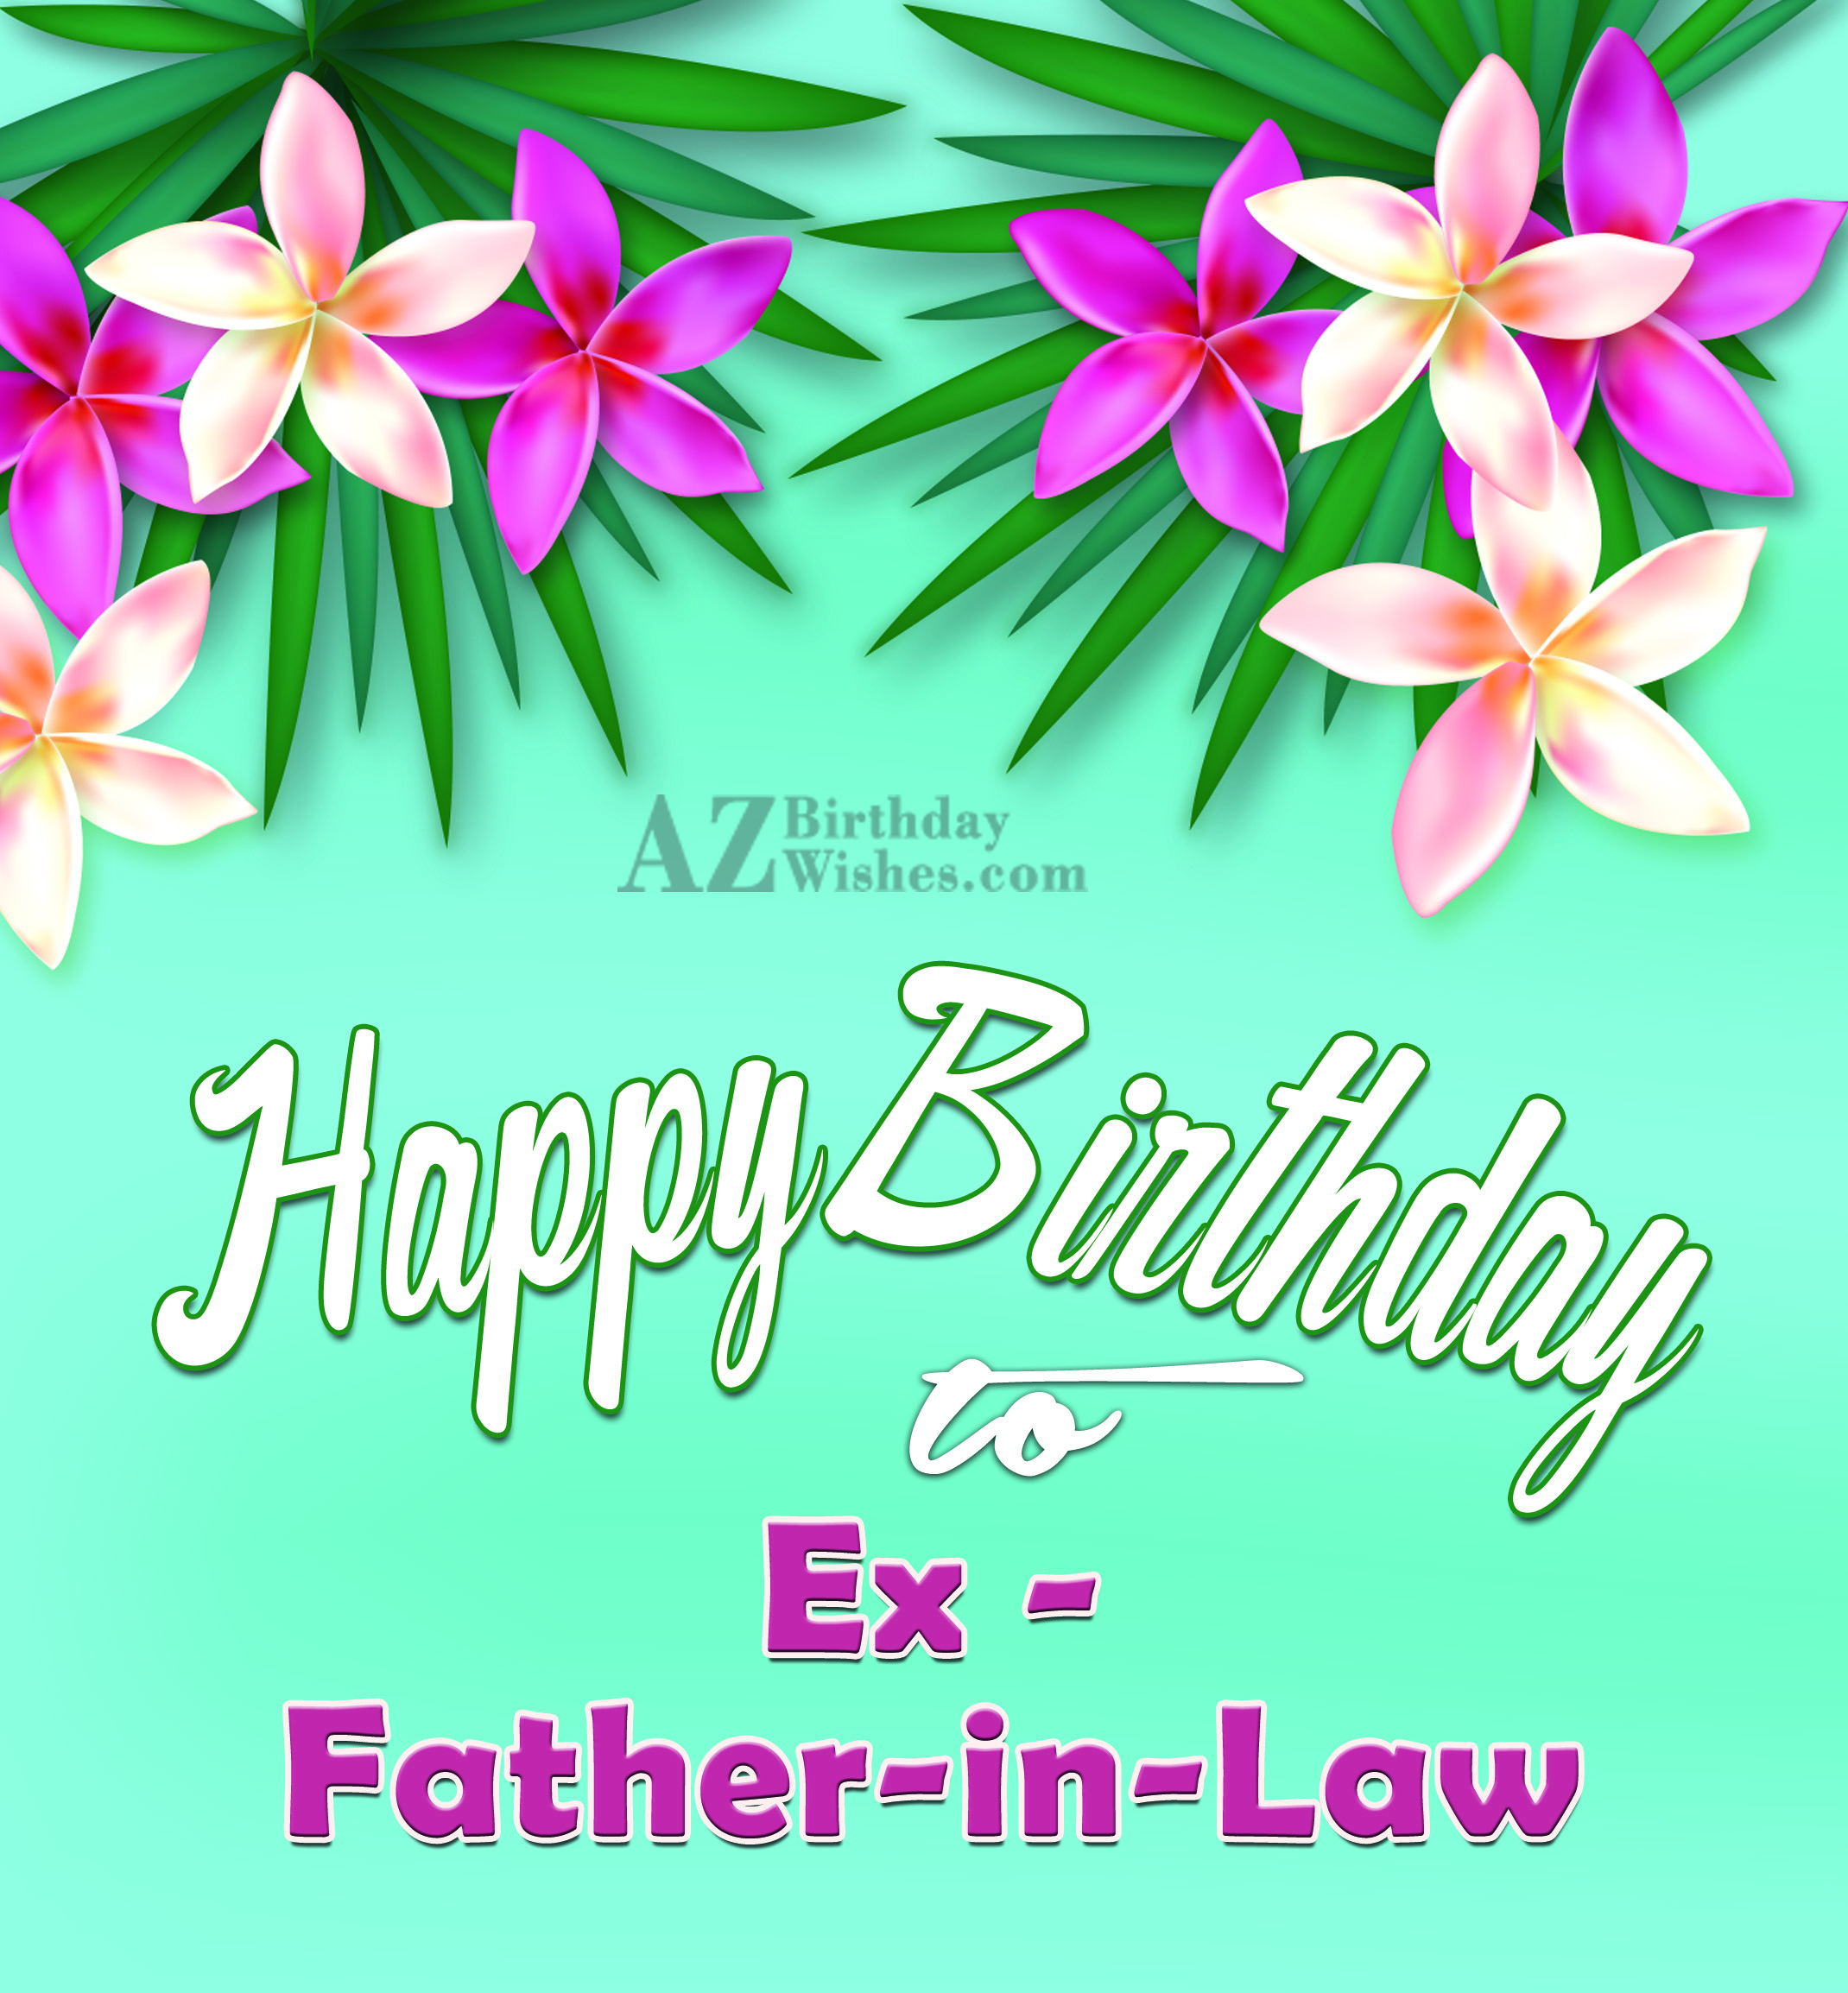 Birthday Wishes For Ex Father-In-Law